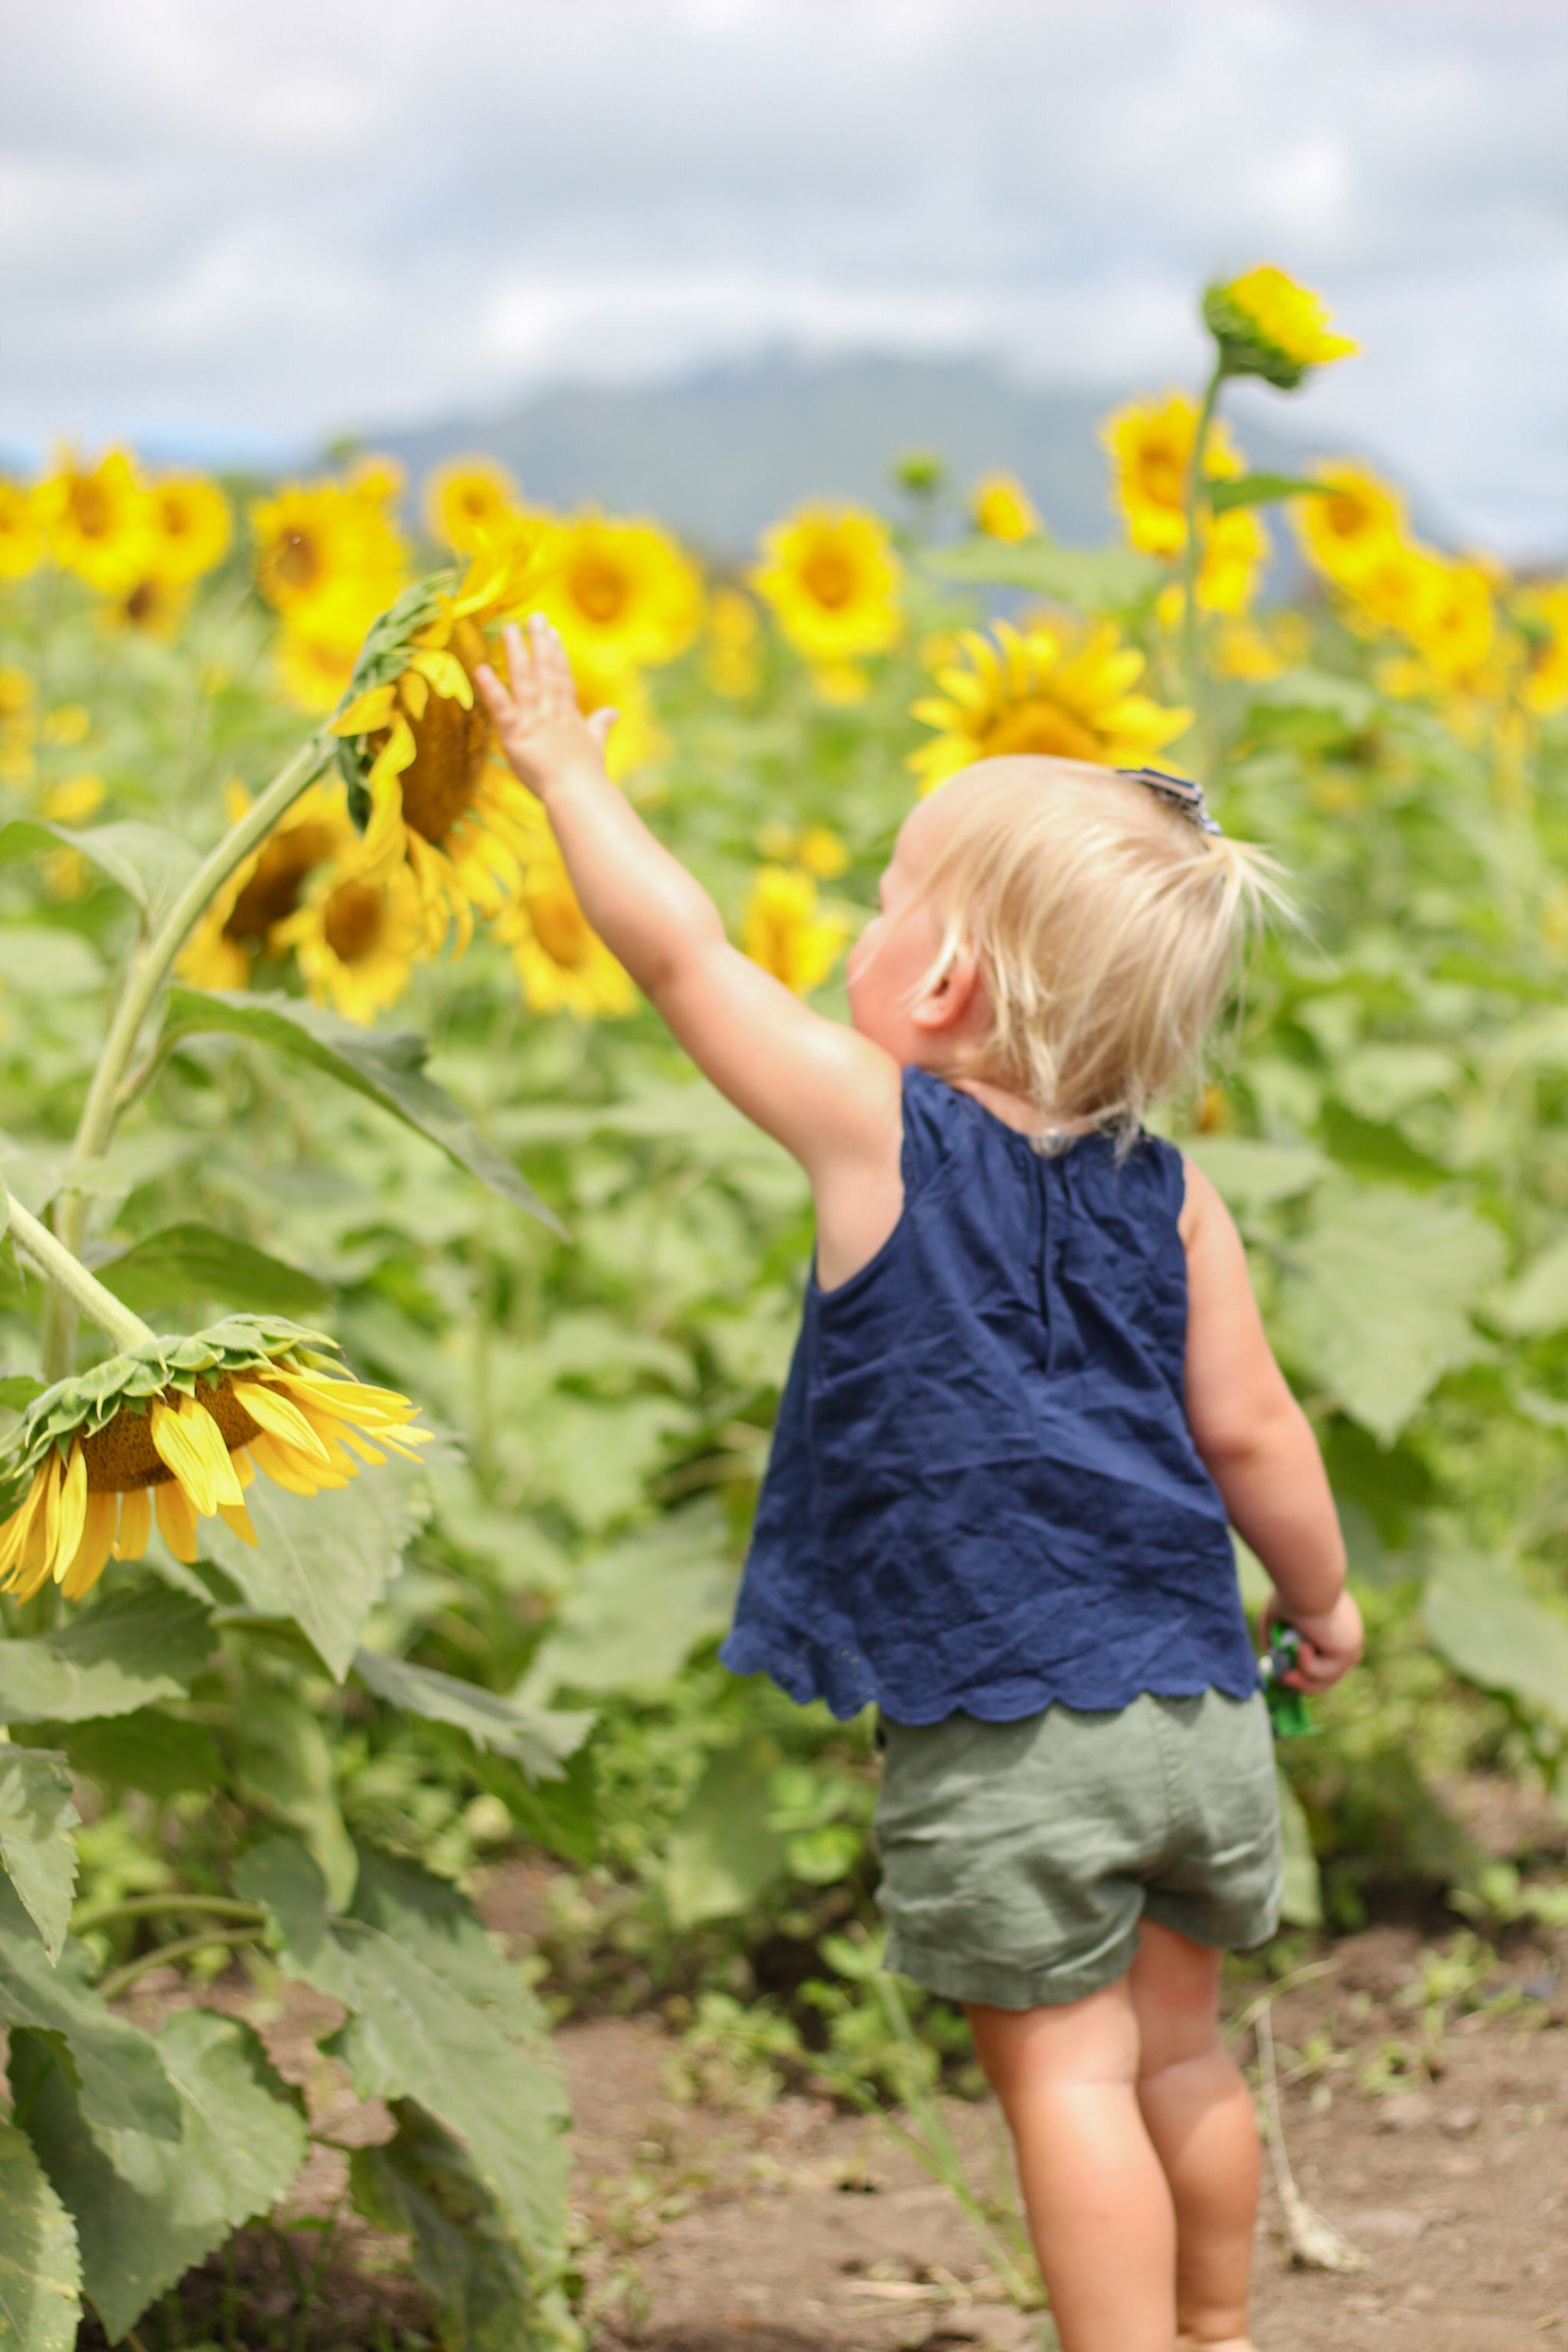 Waimanalo Country Farms - Hawaii - things to do in Hawaii - traveling in Hawaii - hawaii with kids - oahu with kids - sunflower field - sunflowers in hawaii - toddler style - toddler girl style